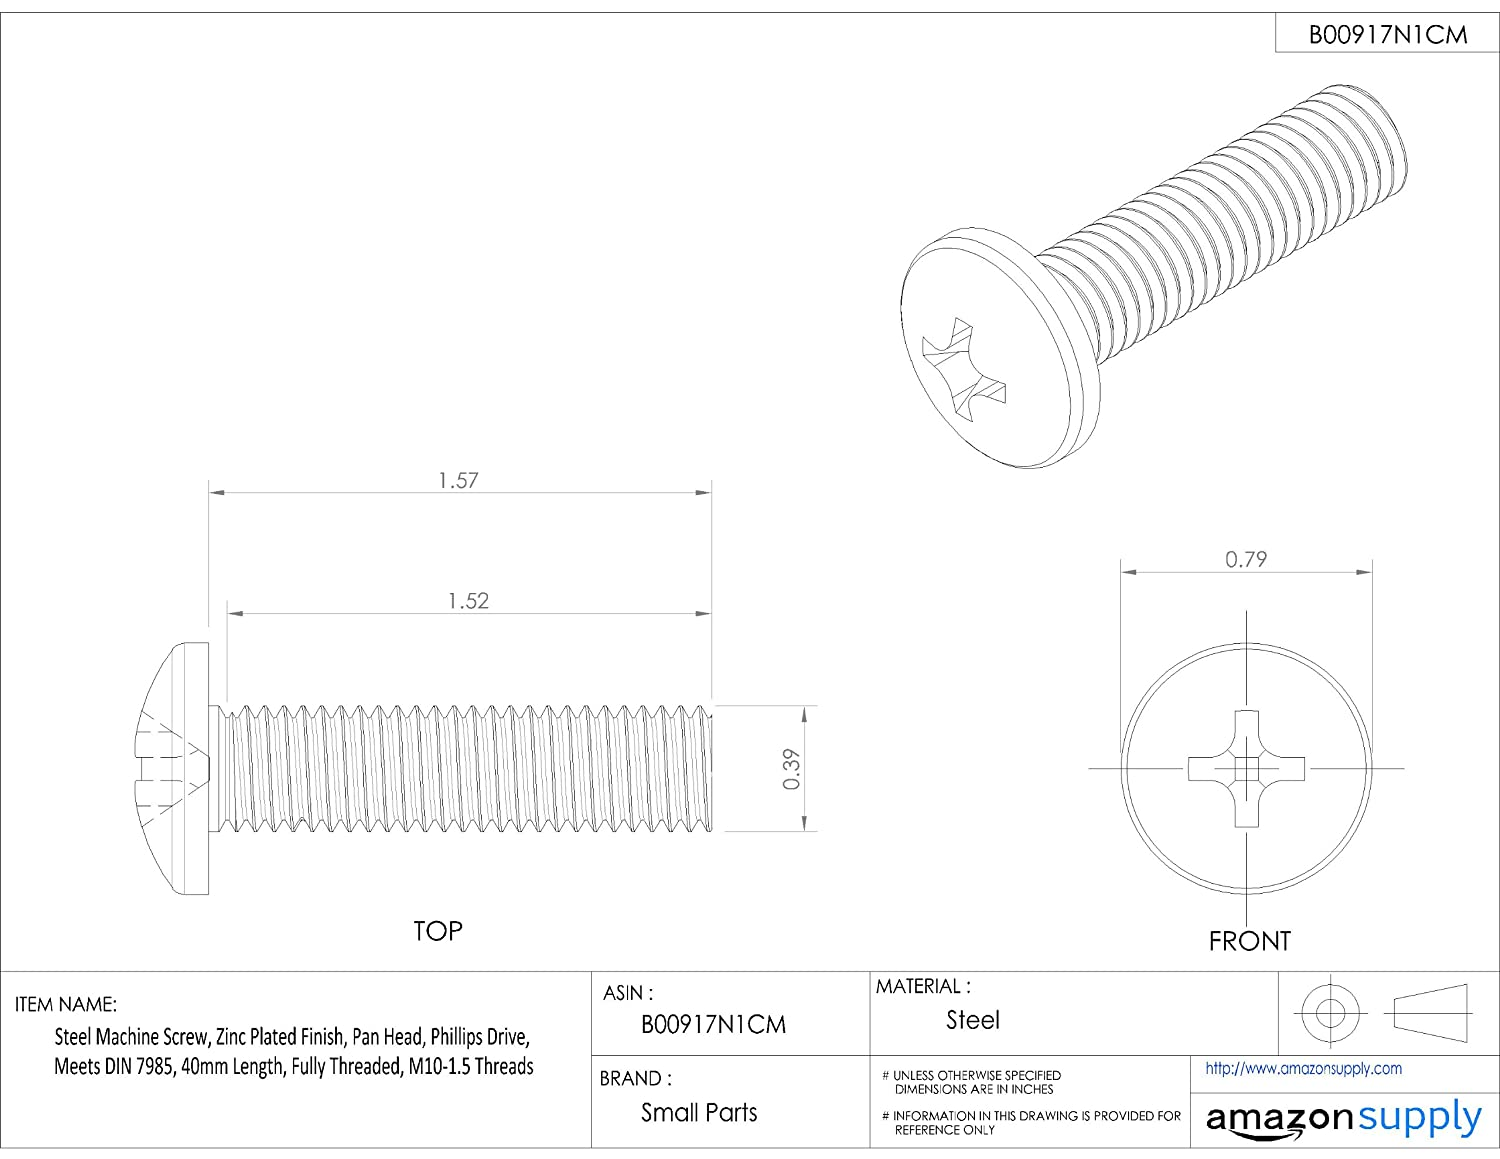 Steel Machine Screw Meets DIN 7985 M10-1.5 Metric Coarse Threads Zinc Plated Finish Fully Threaded 40mm Length Phillips Drive Pan Head